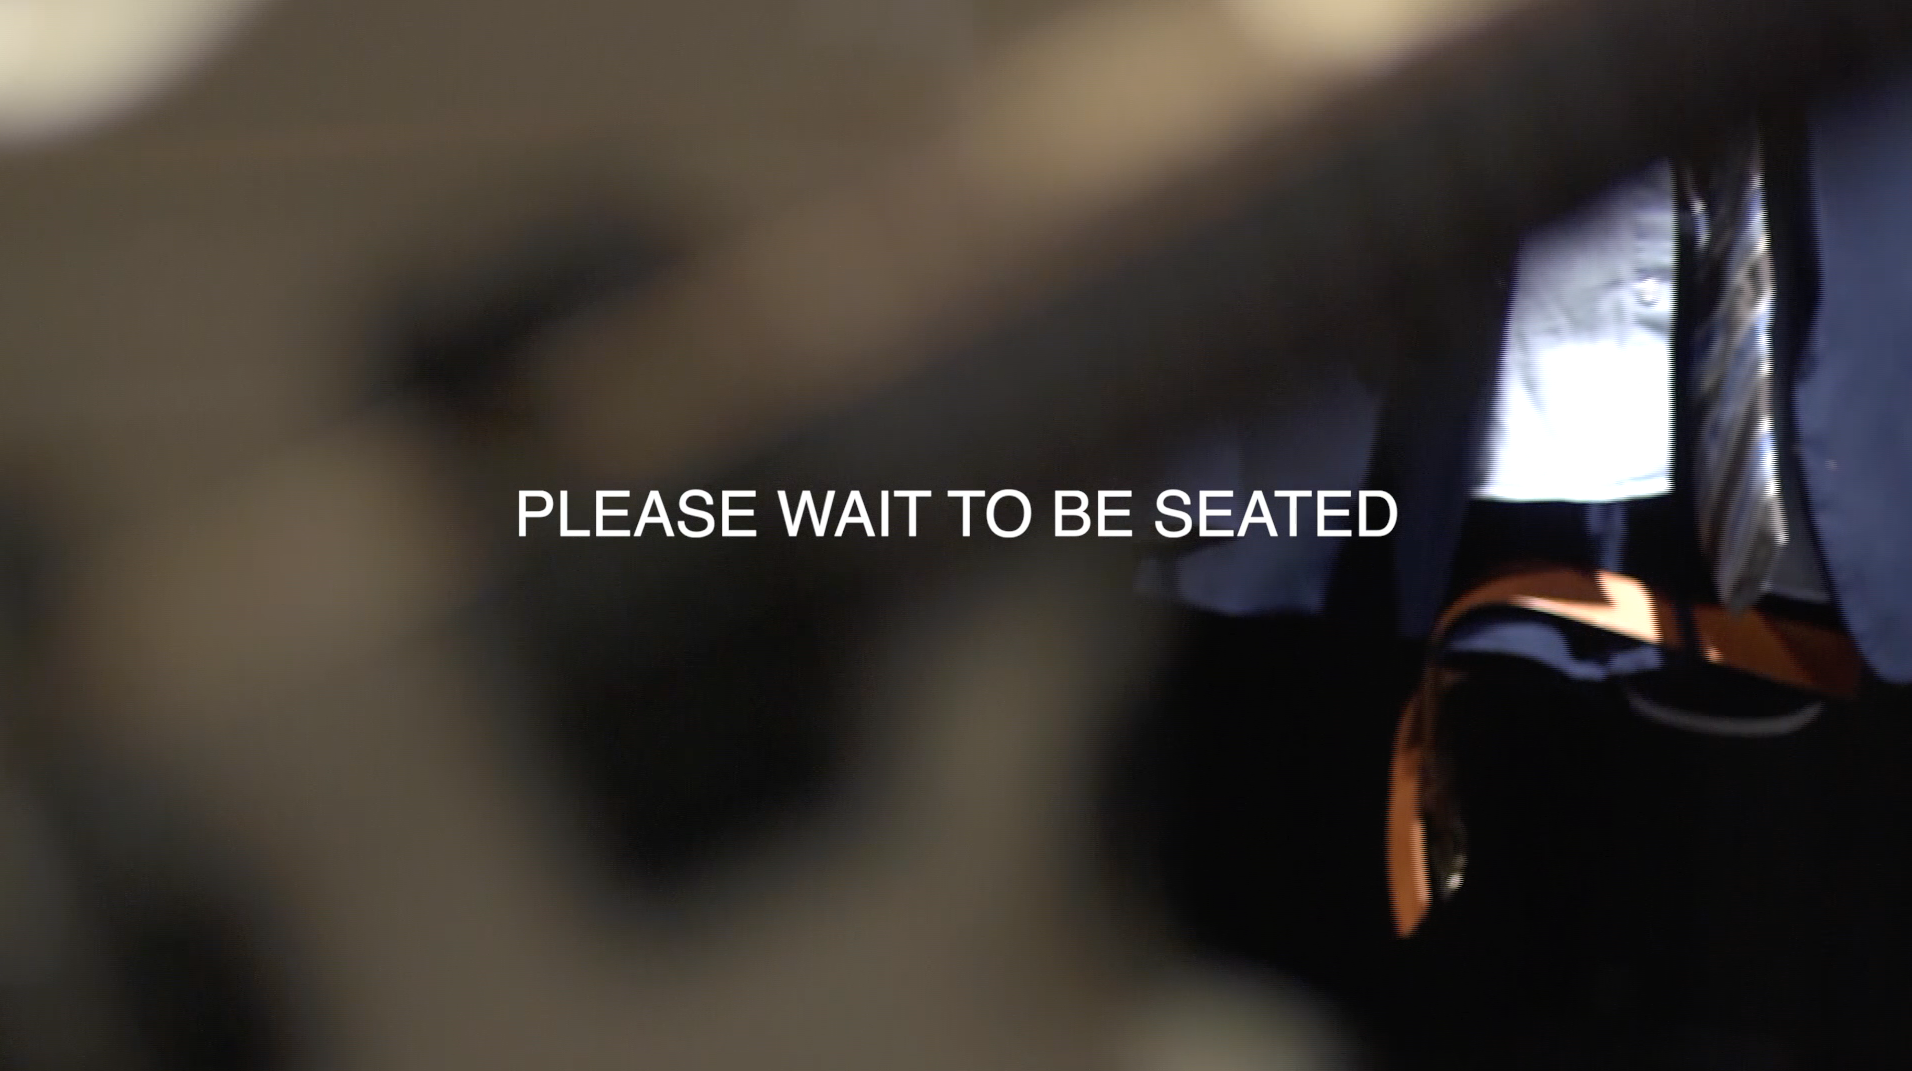 PLEASE WAIT TO BE SEATED ©Barbara Schröer